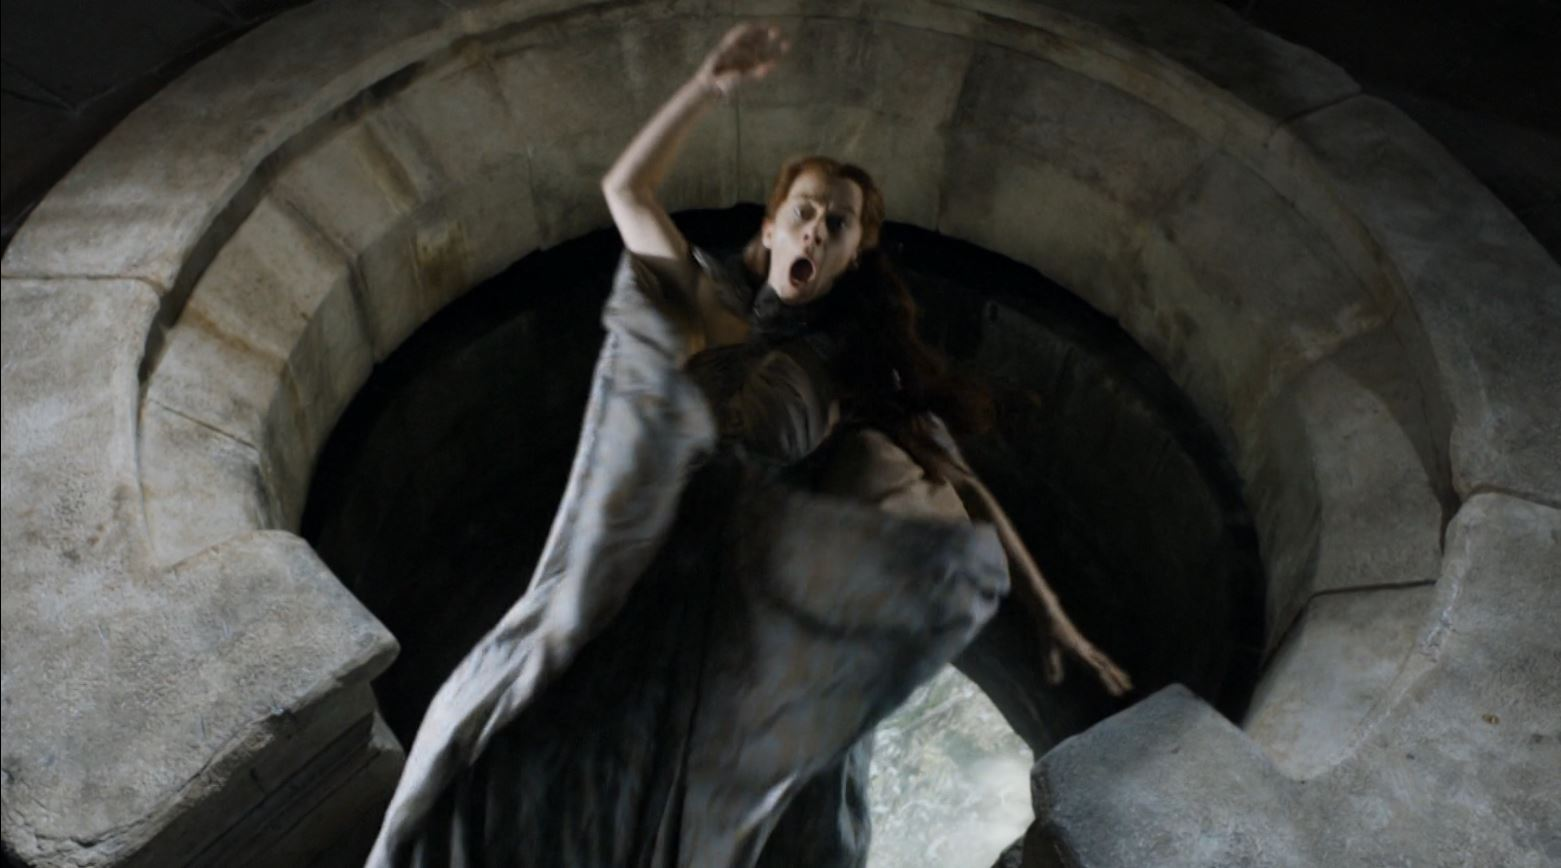 Game of Thrones - Episodes - Discussion - *Sleuthing Spoilers*  - Page 3 Game-Of-Thrones-S4Ep7-Mockingbird-Review-Kate-Dickie-as-Lysa-Arryn-thrown-out-of-the-moon-door